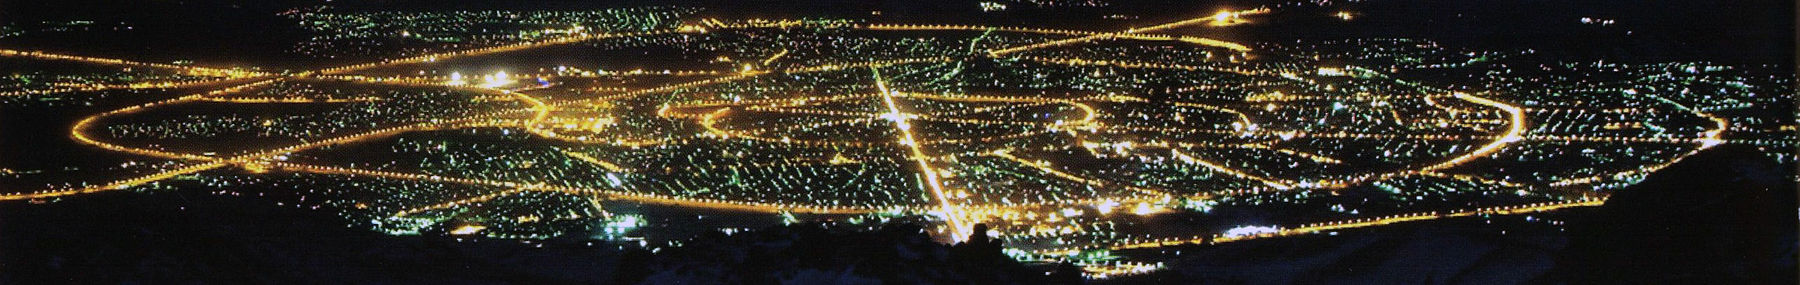 Hamedan Night Panorama1.jpg